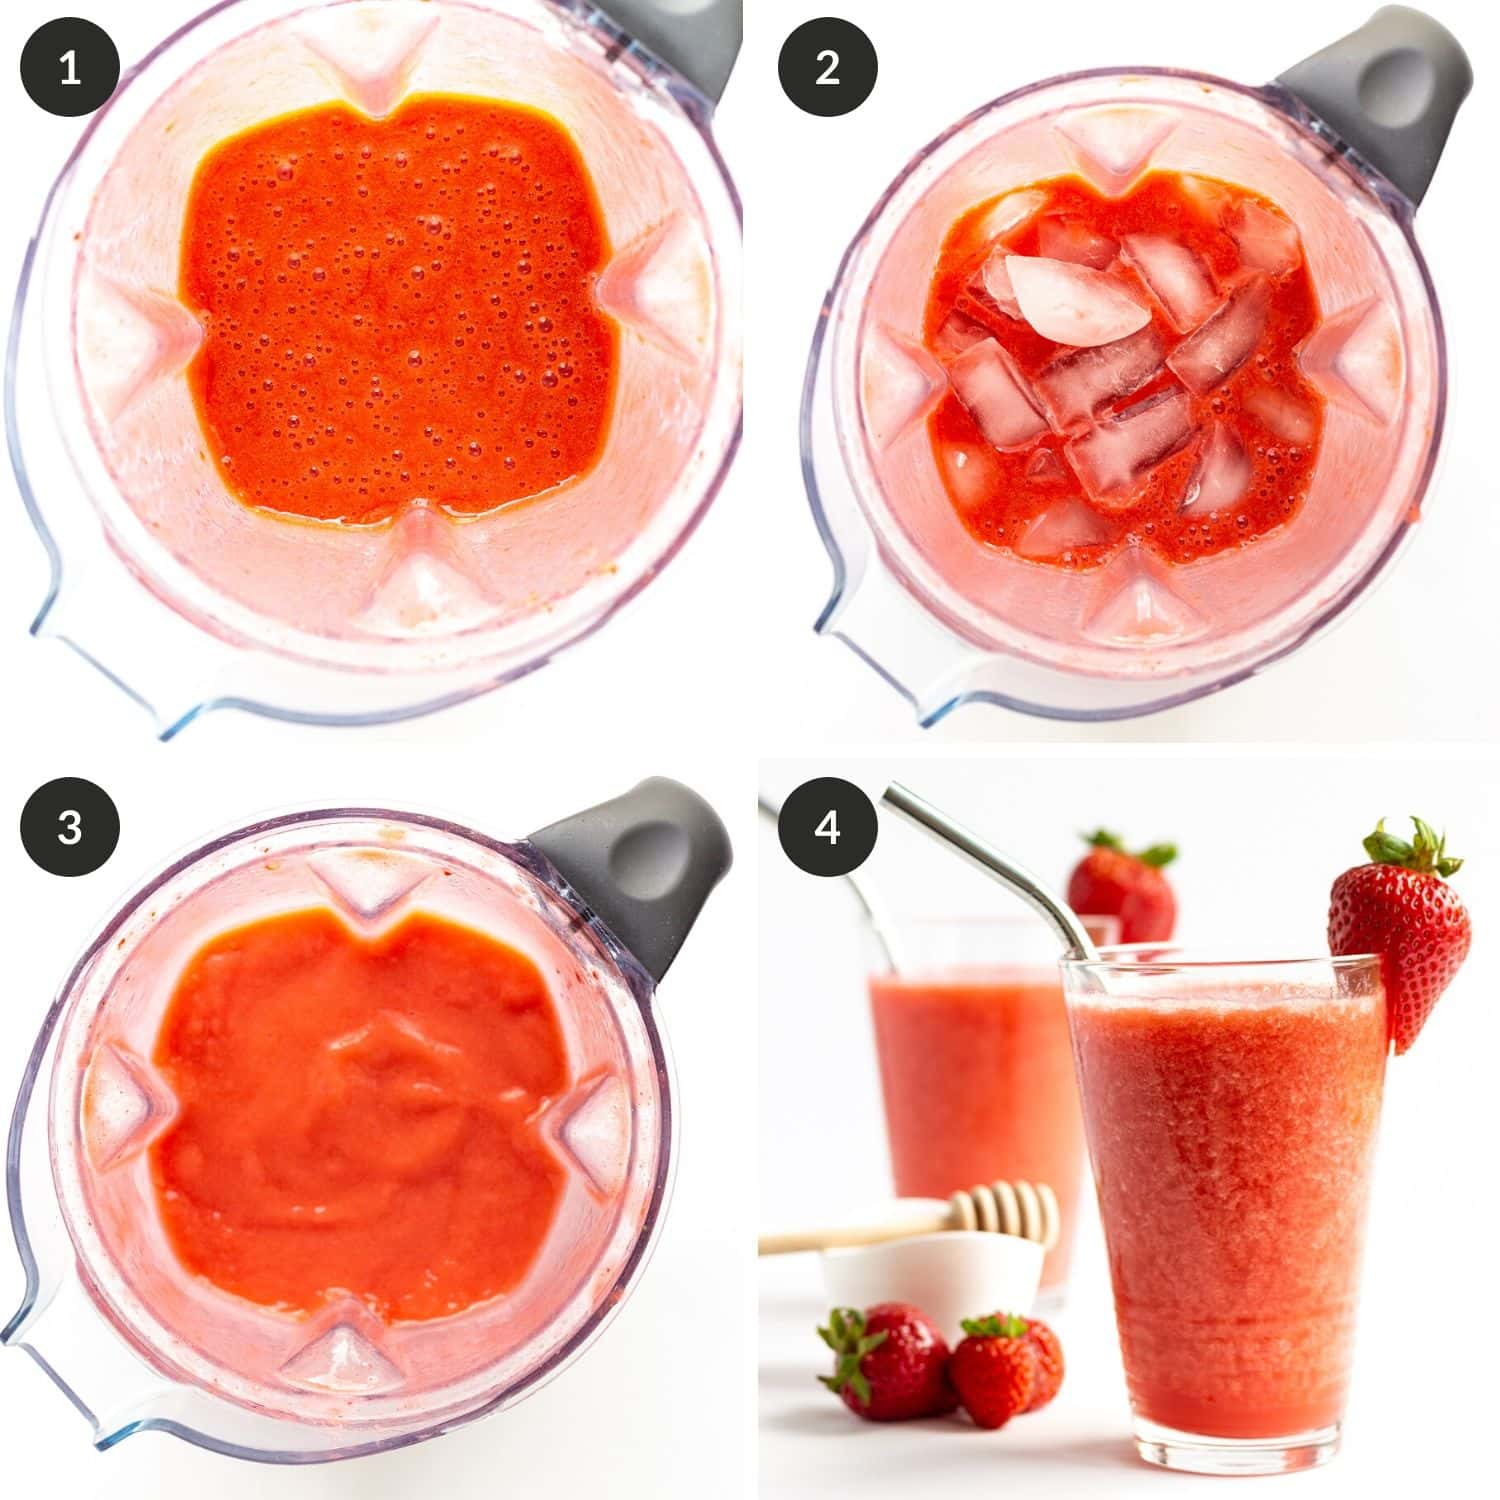 Collage of photos showing step by step process for healthy homemade strawberry slushies.